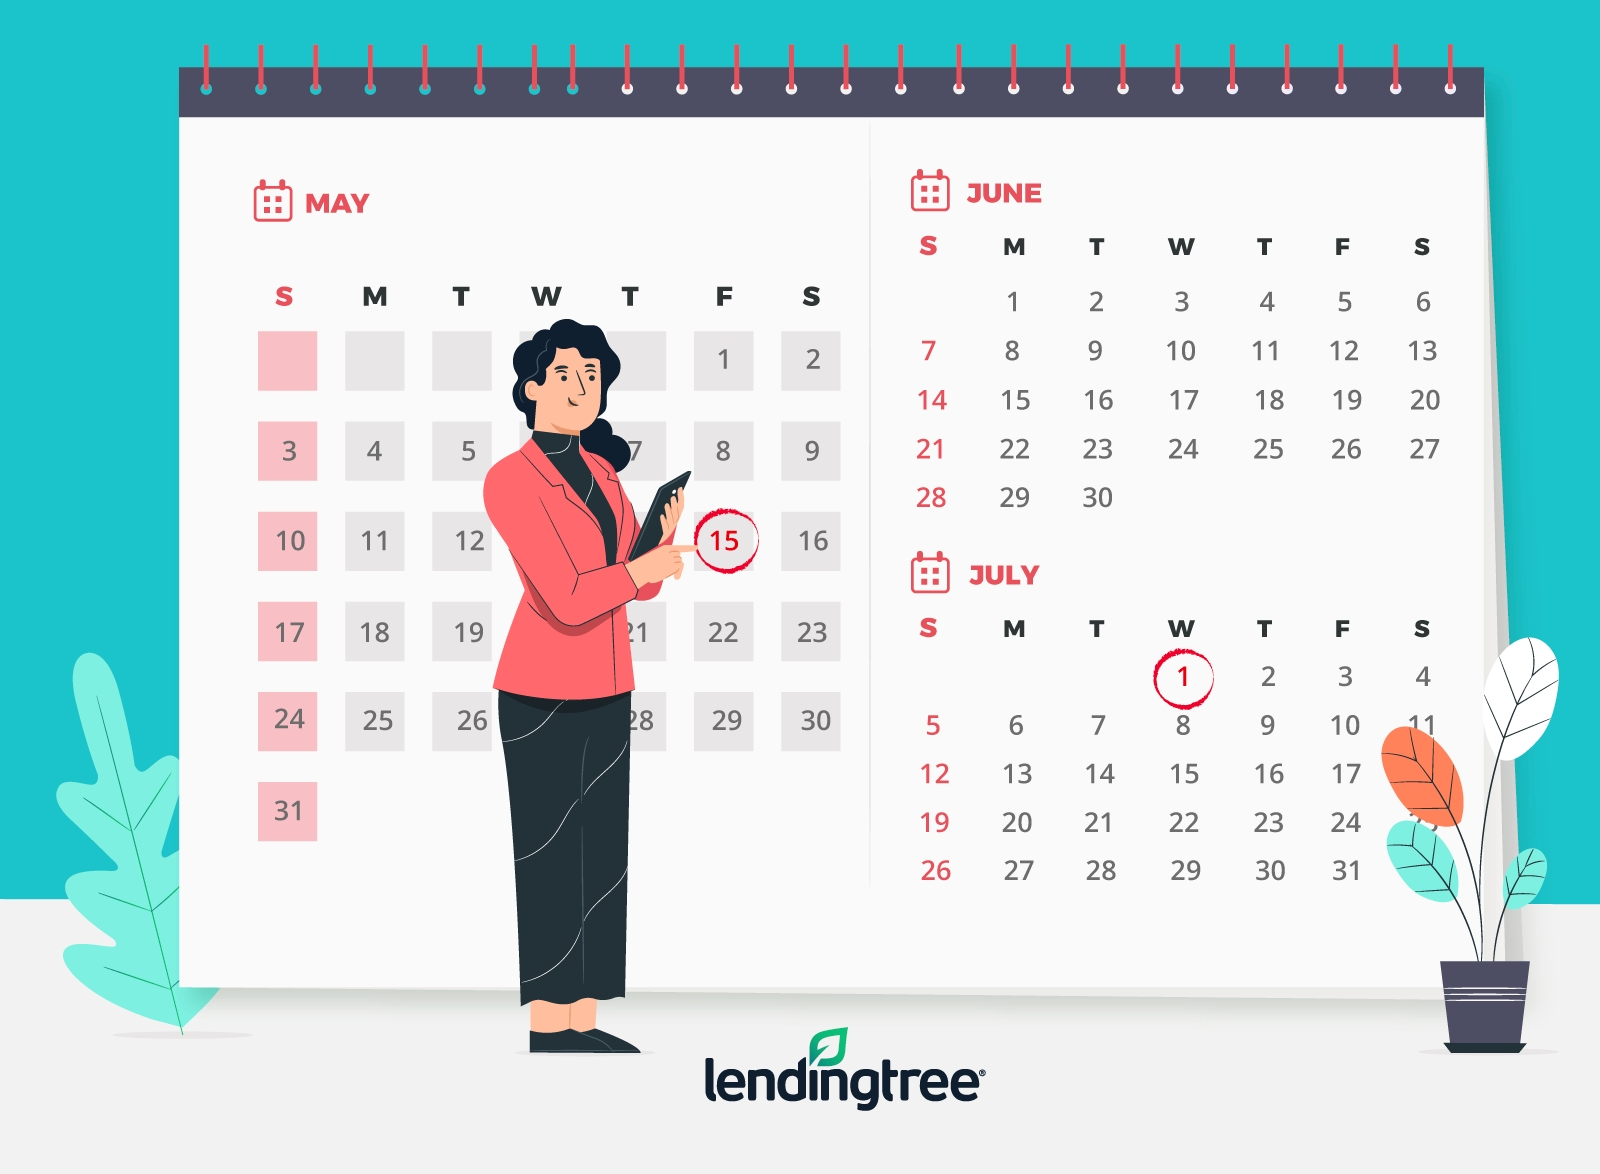 When Is My First Mortgage Payment Due? | Lendingtree